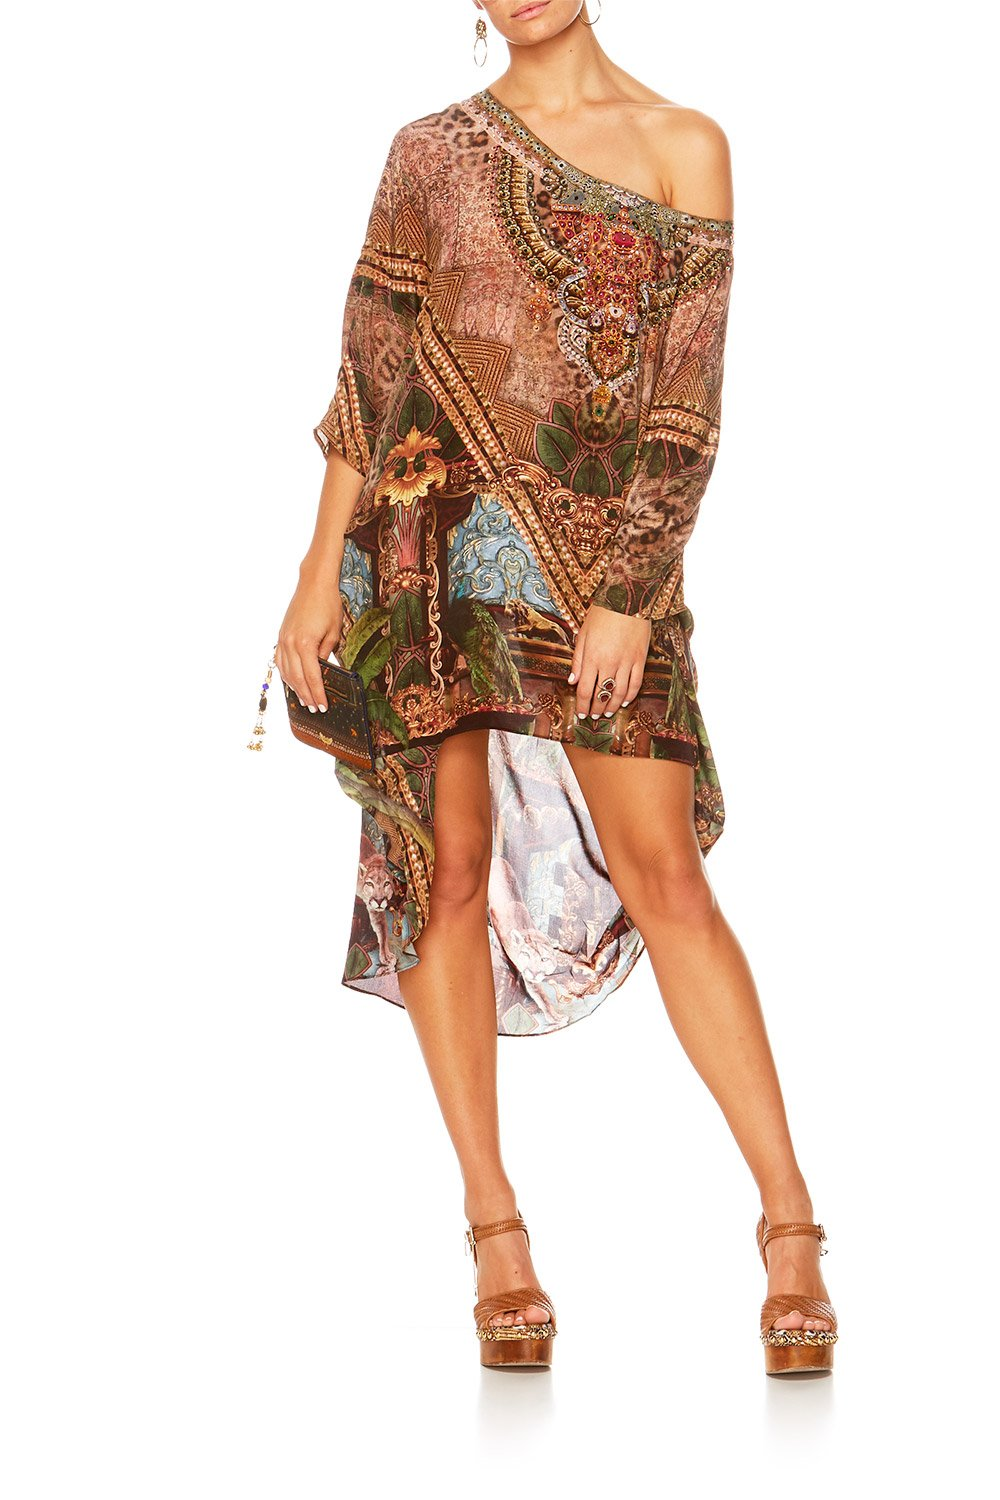 THE GYPSY LOUNGE SCOOP BACK HEM DRESS